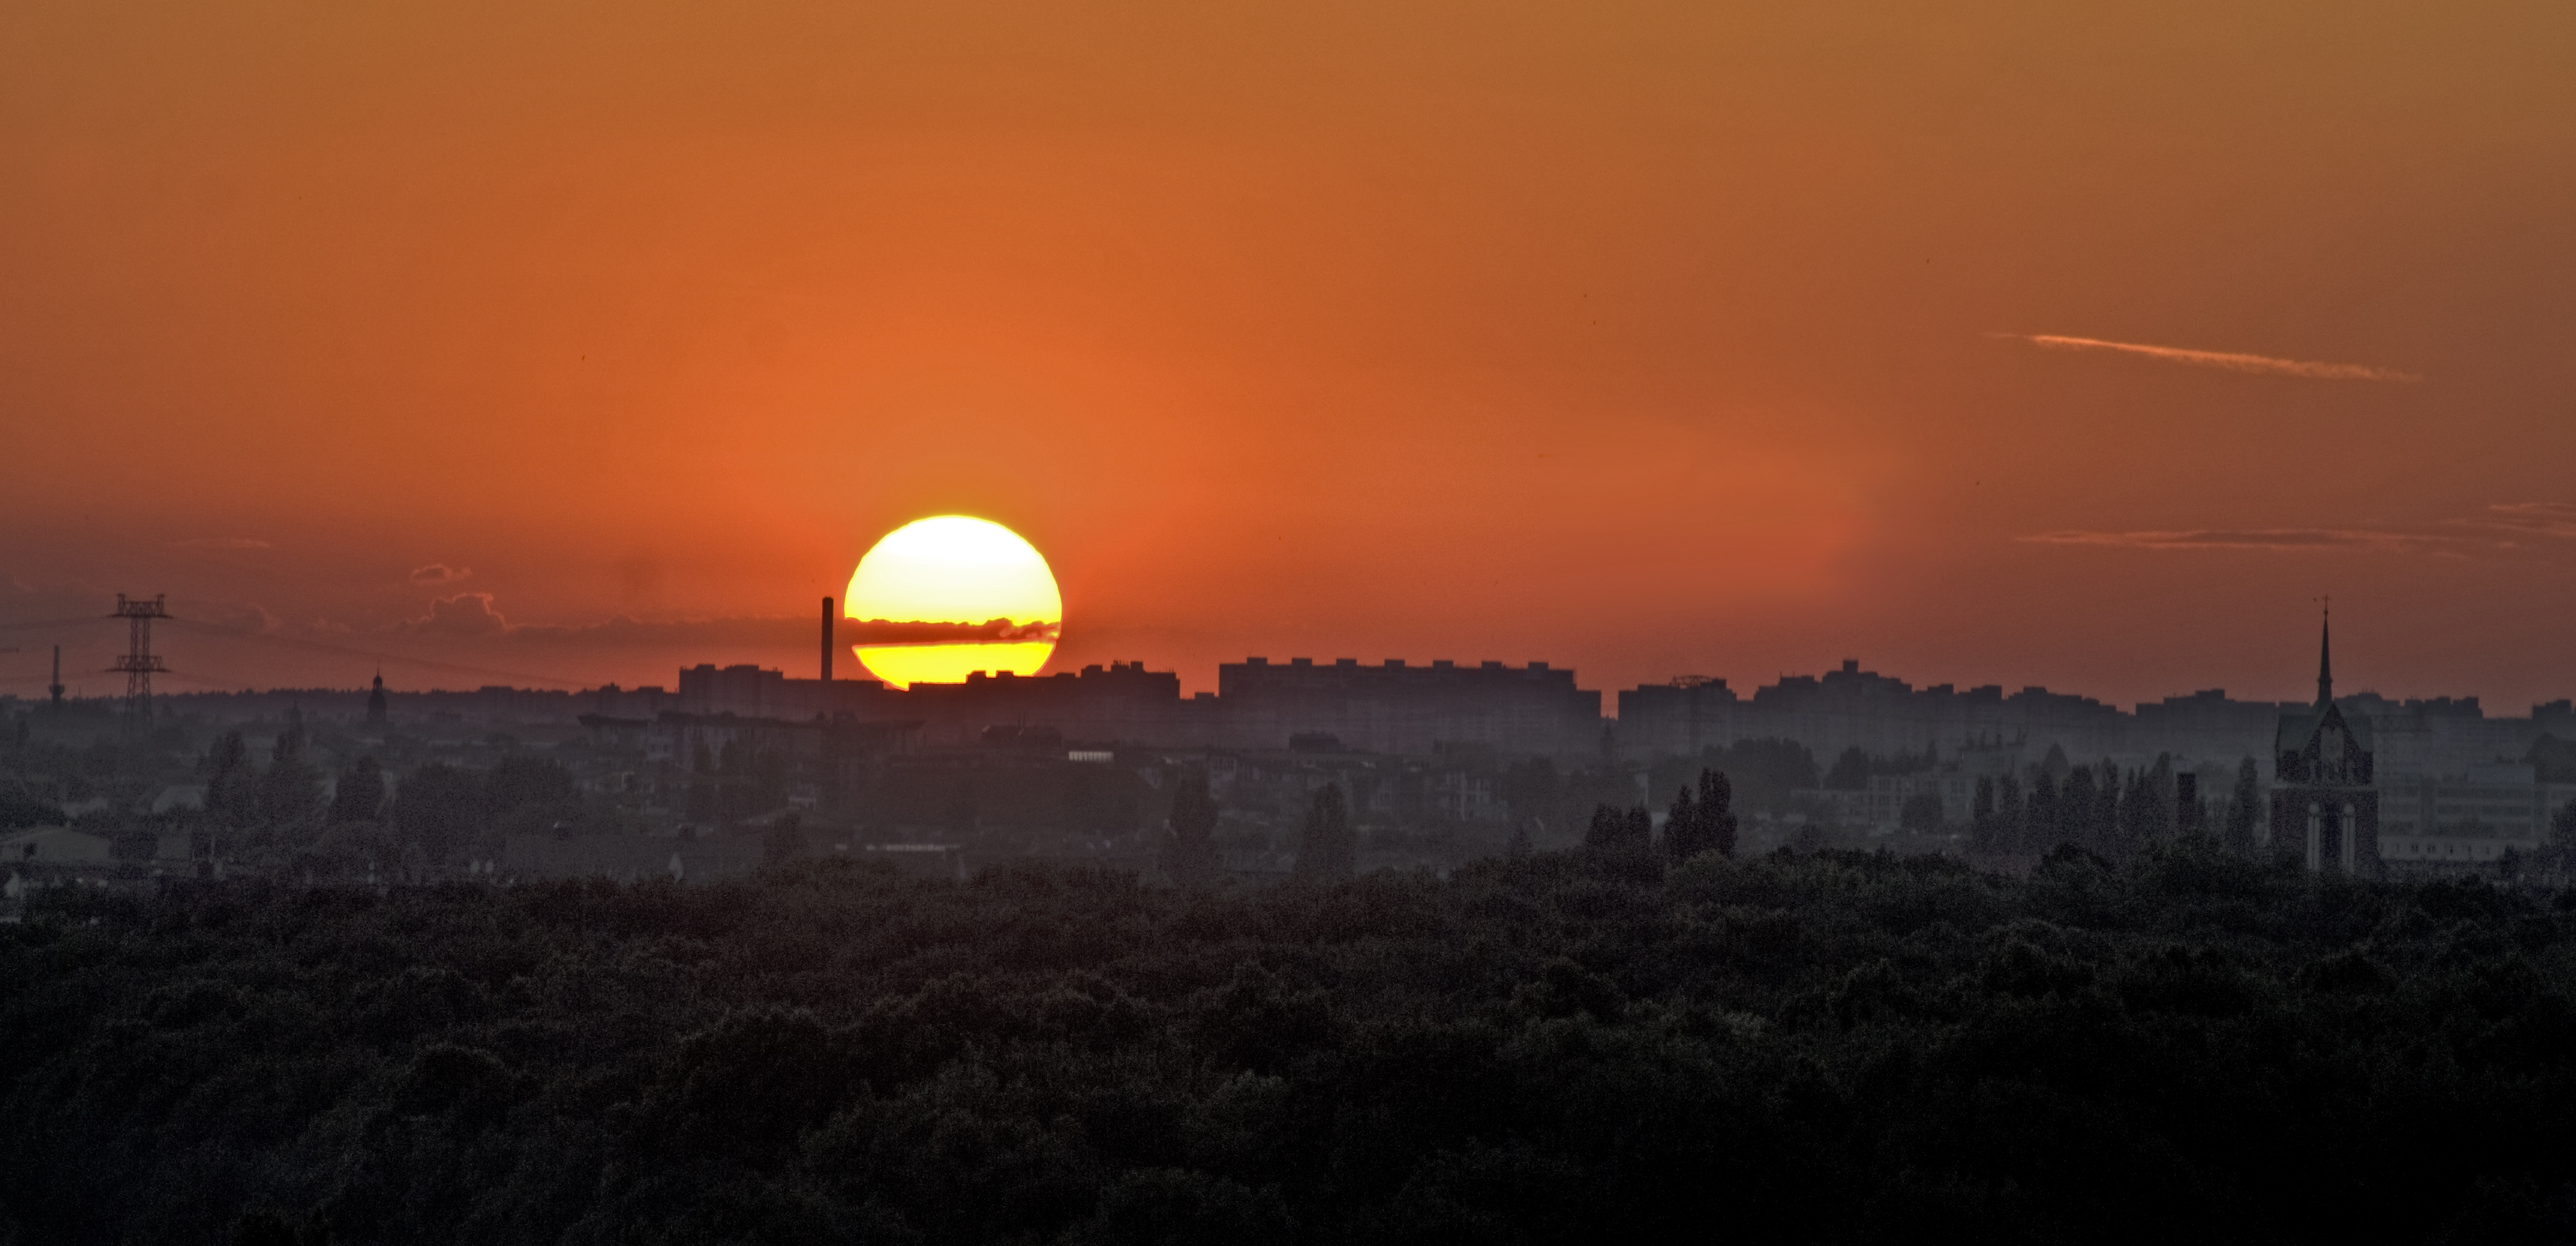 Free photo: Sunset in Berlin - Storm, Sunset, Sky - Free